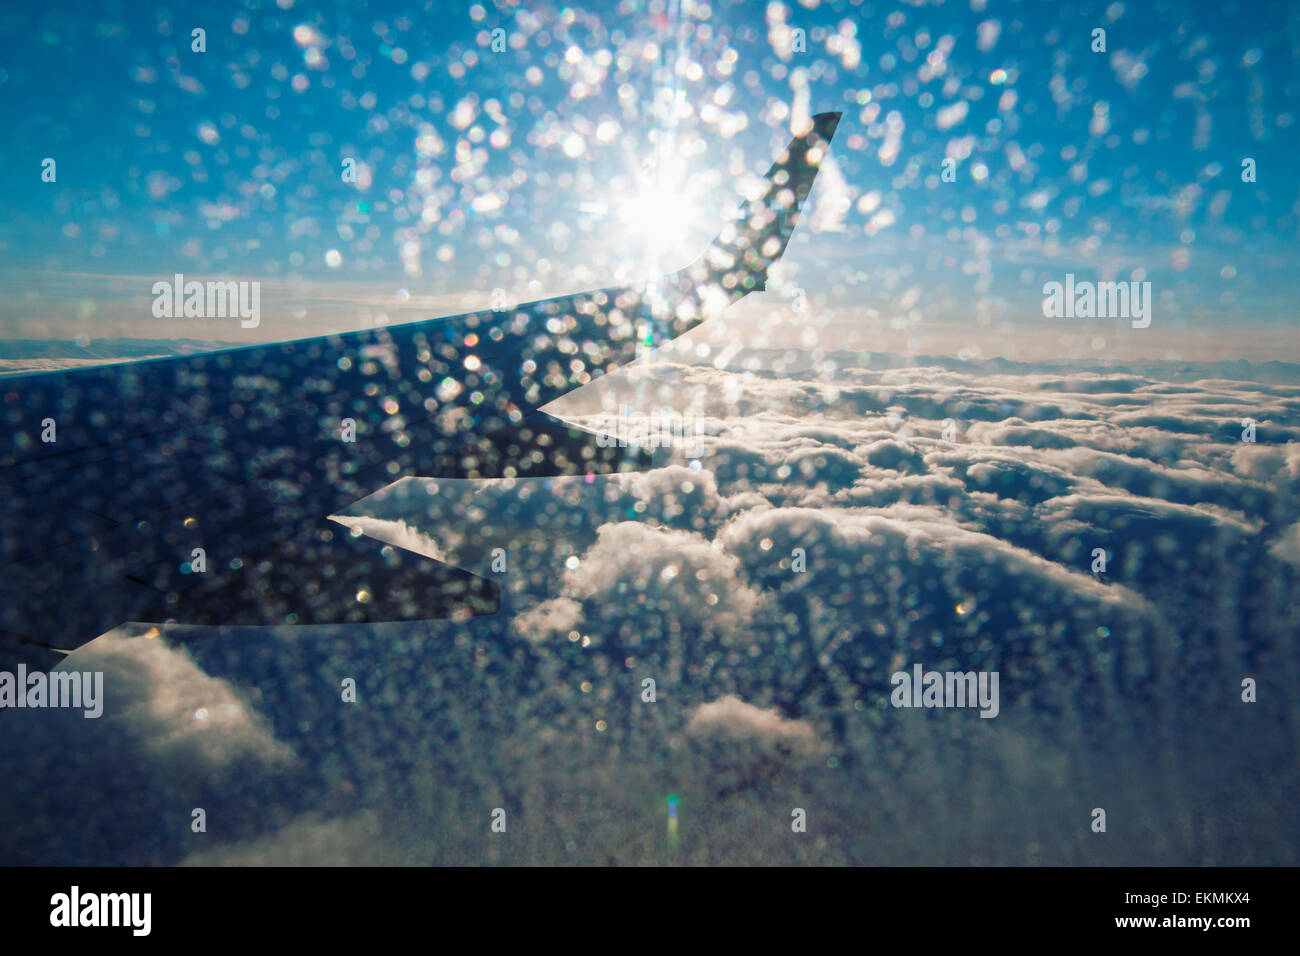 View of airplane wing  and clouds from inside cabin on sunny day with ice on the window. - Stock Image